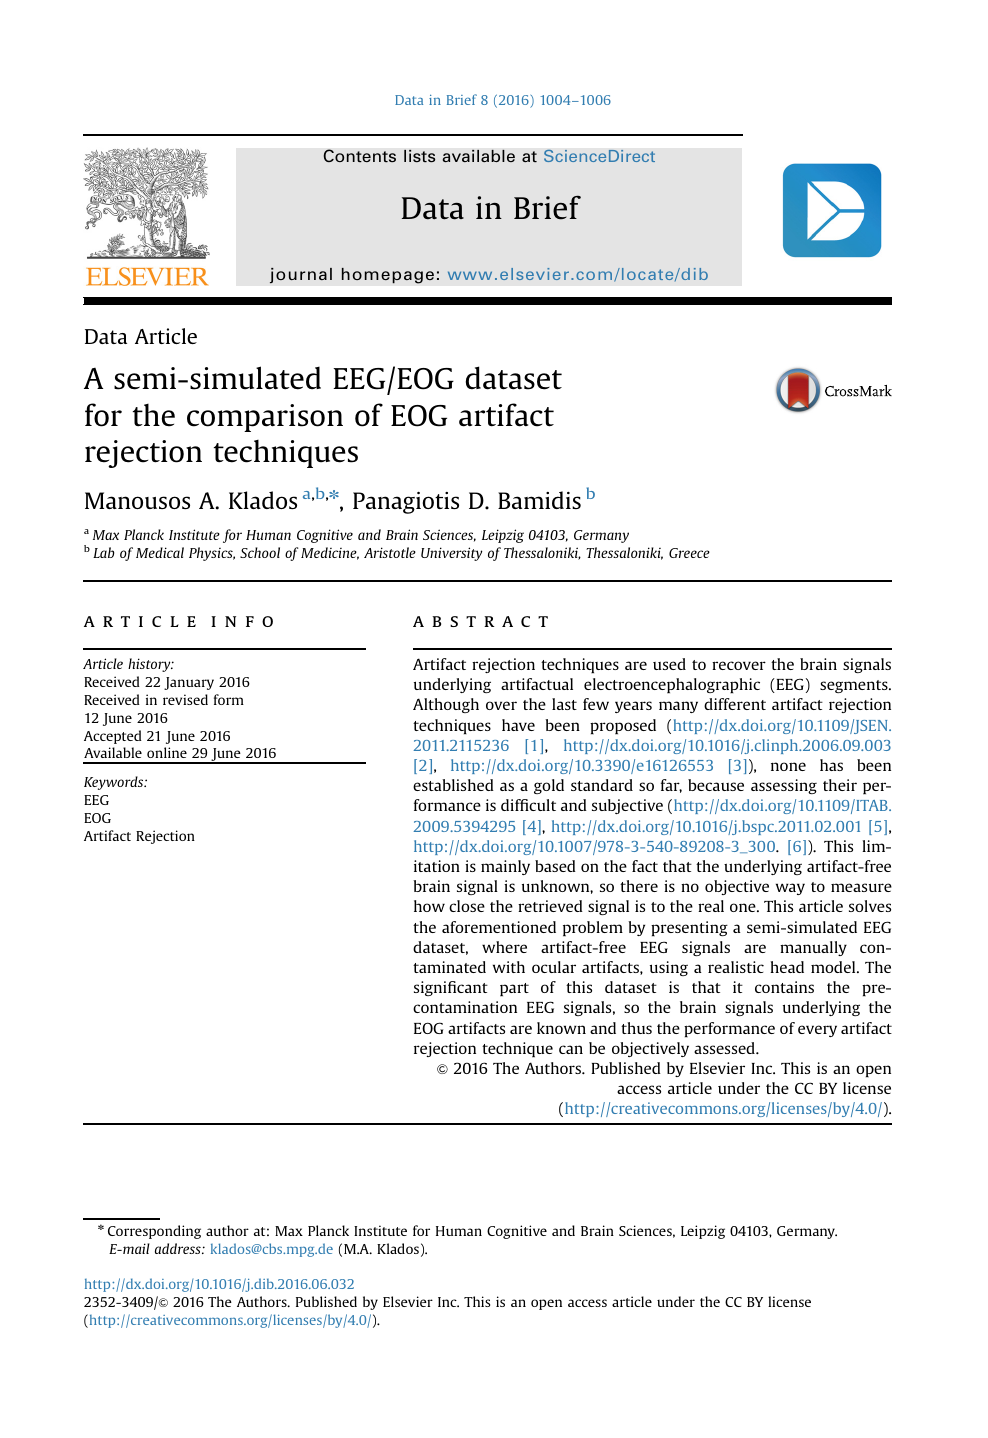 A semi-simulated EEG/EOG dataset for the comparison of EOG artifact